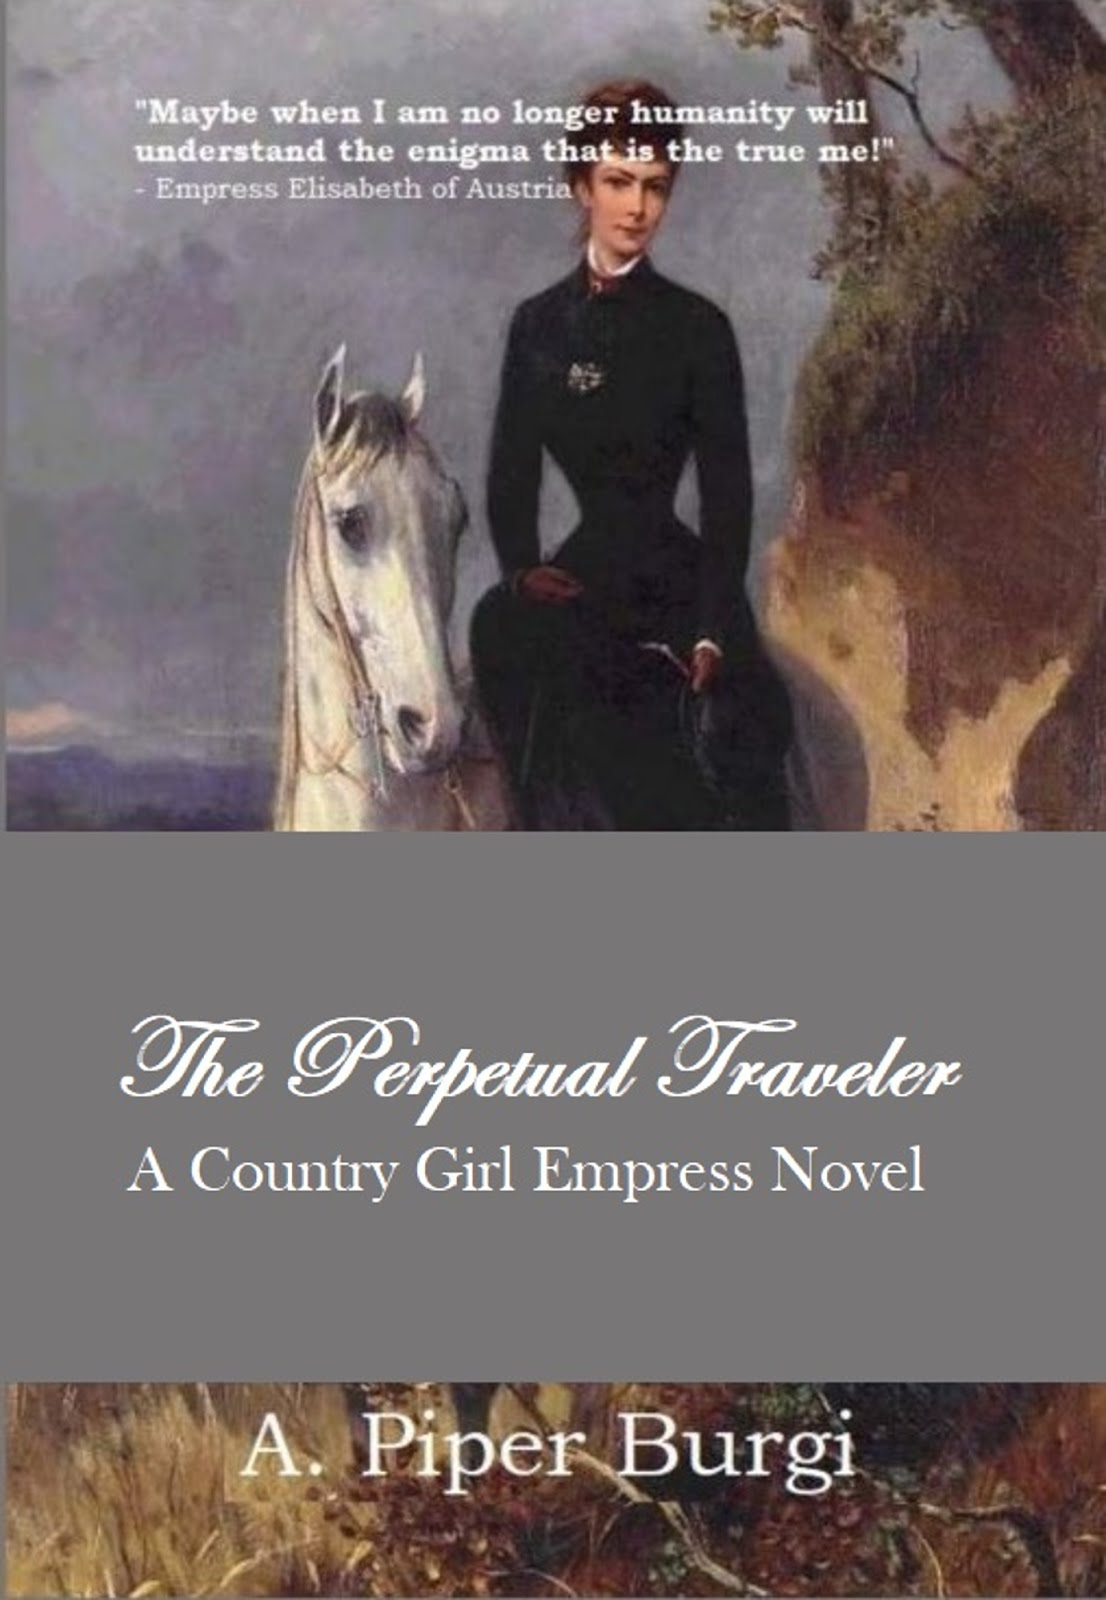 The Perpetual Traveler